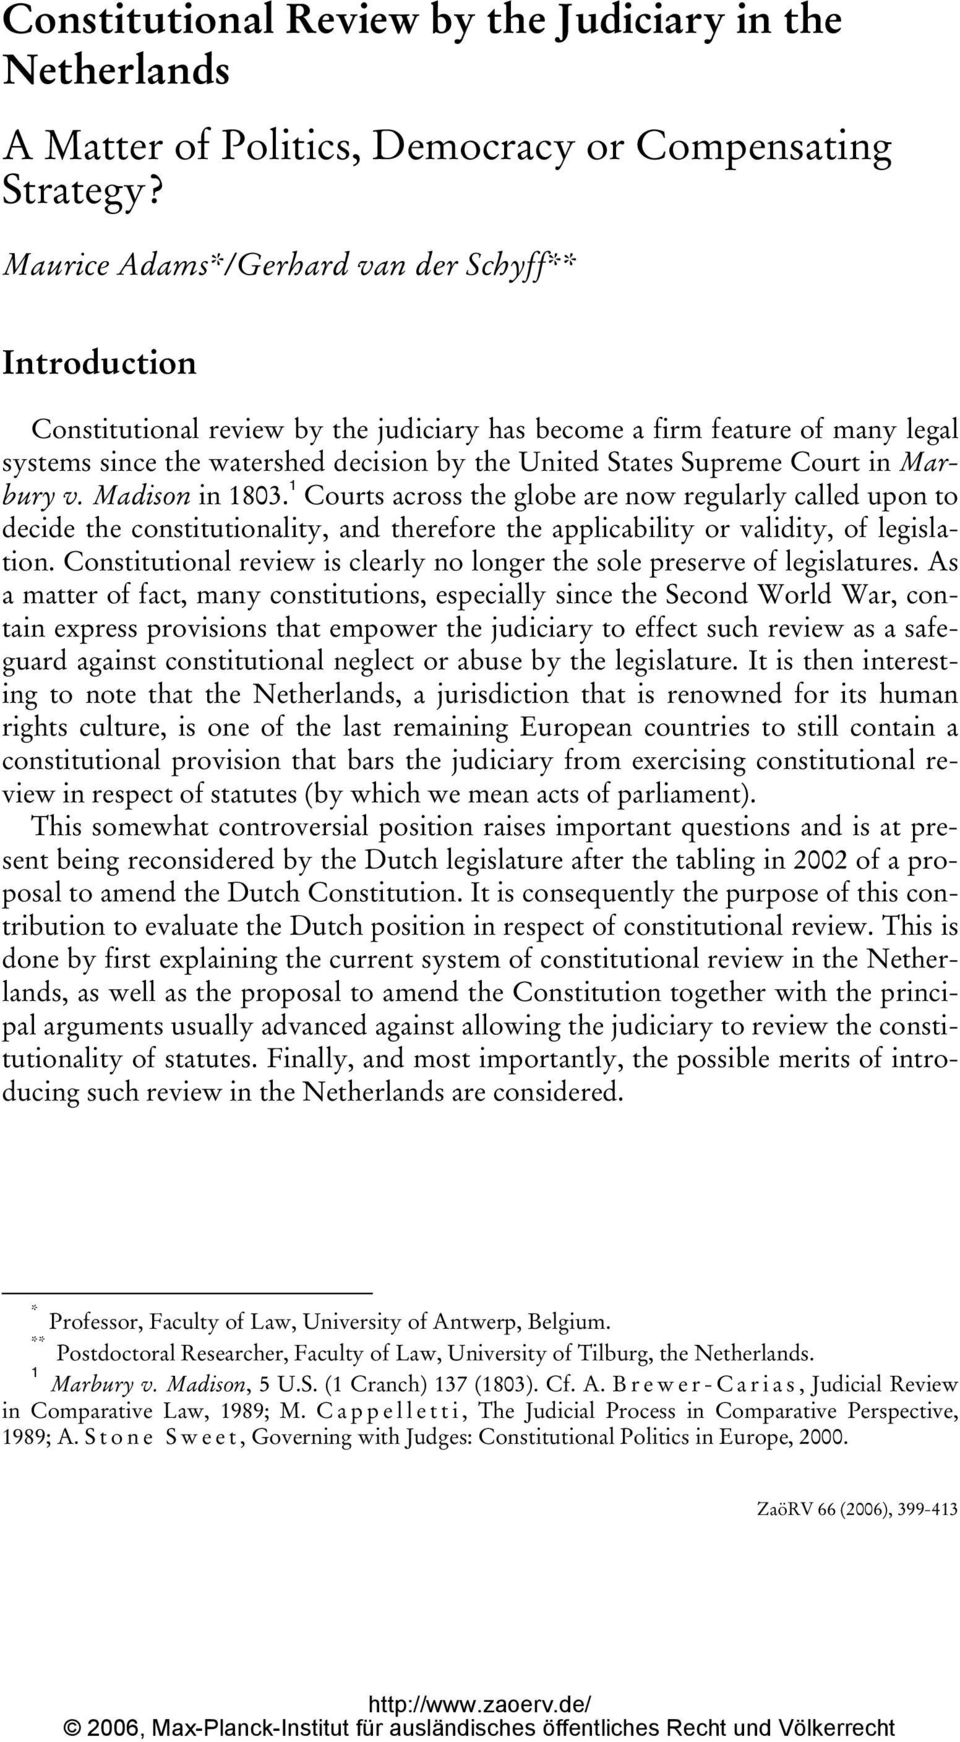 Court in Marbury v. Madison in 1803. 1 Courts across the globe are now regularly called upon to decide the constitutionality, and therefore the applicability or validity, of legislation.